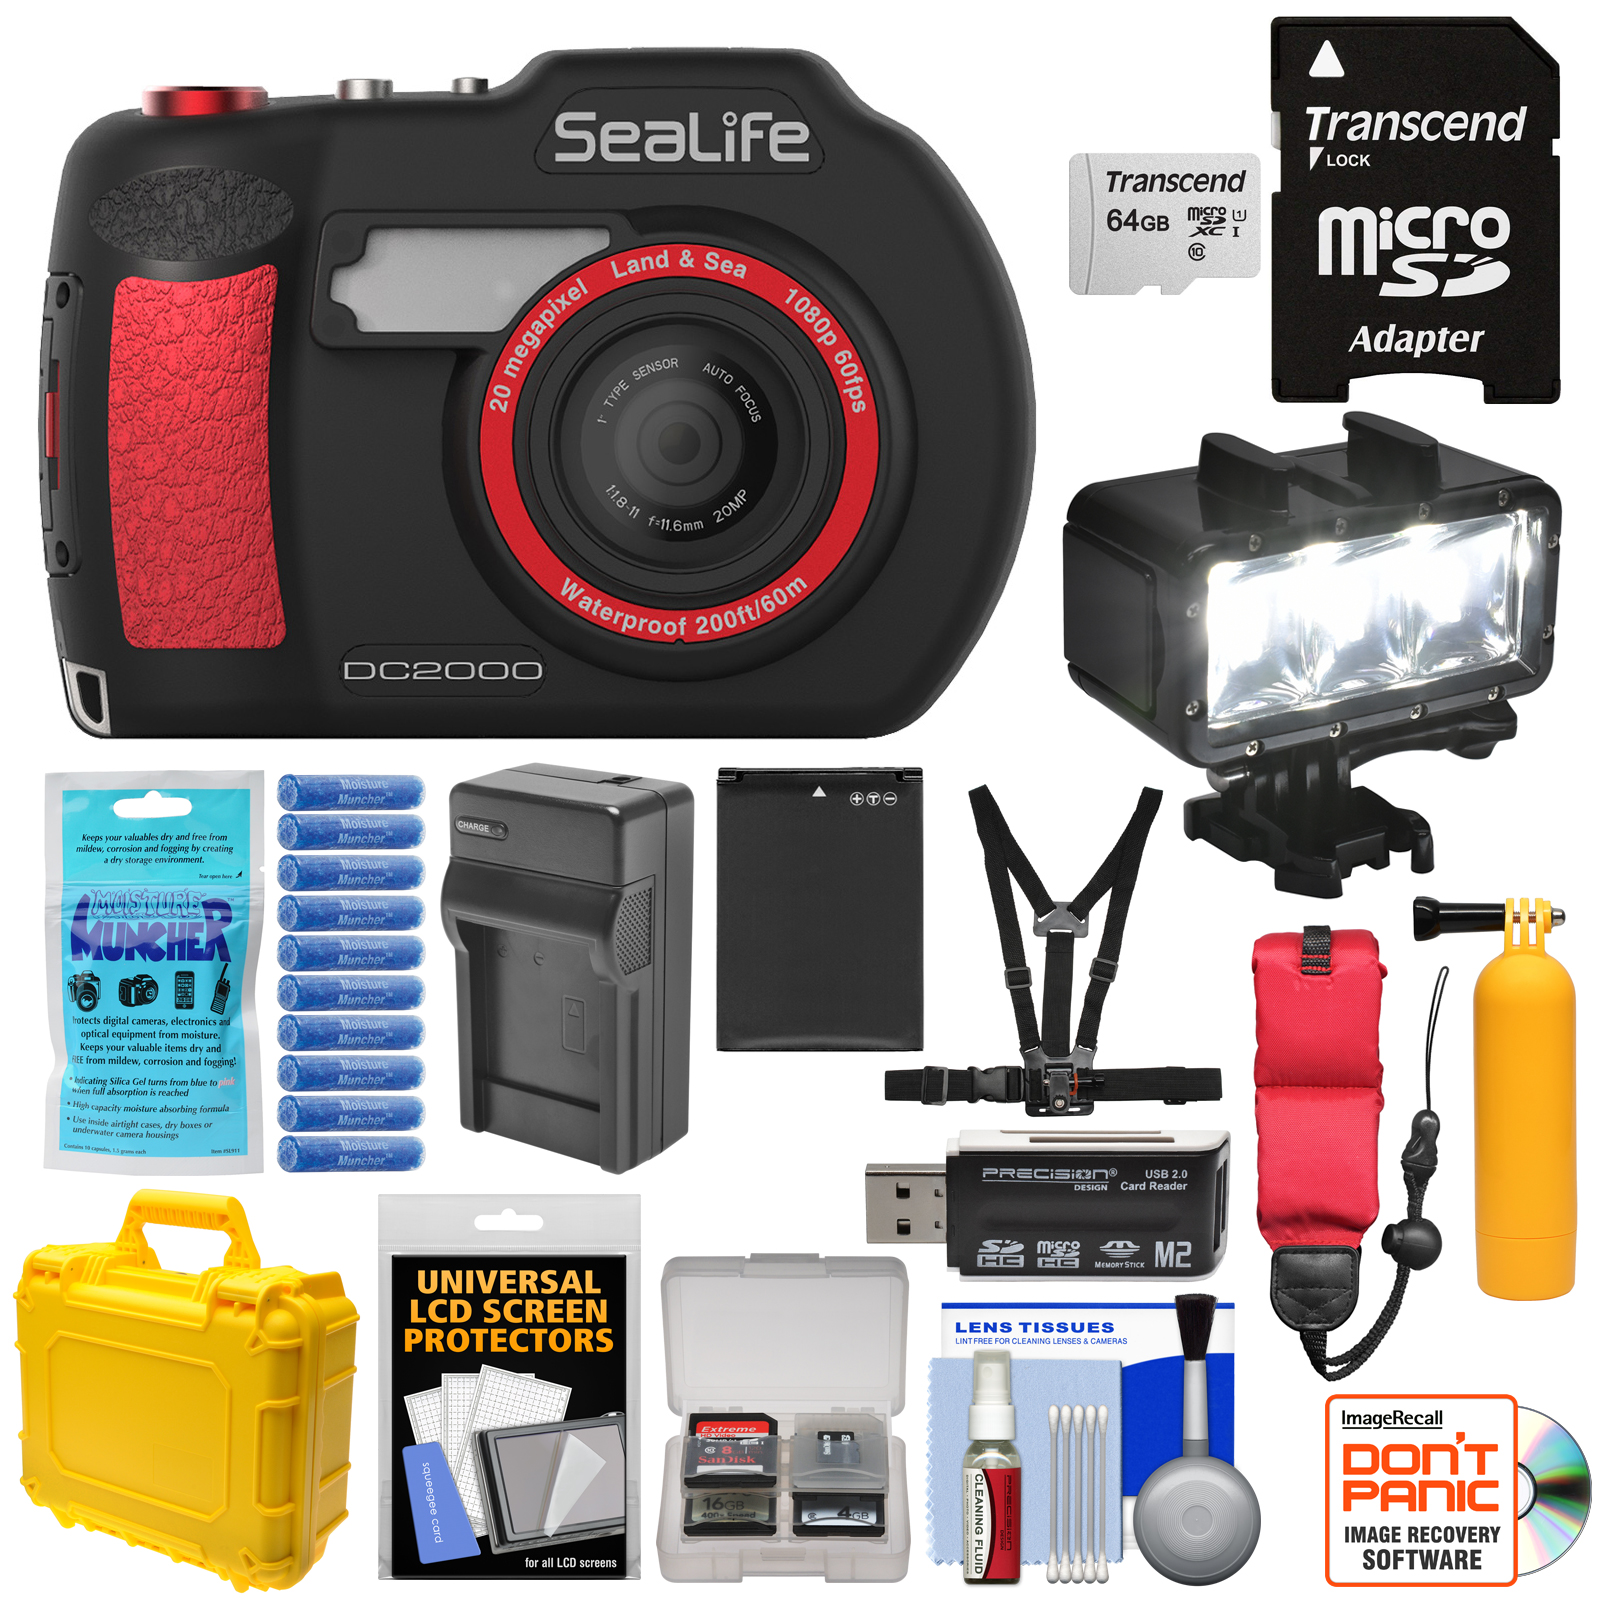 SeaLife DC2000 HD Underwater Digital Camera with 64GB Card + Battery + Charger + LED Light + Case + Kit